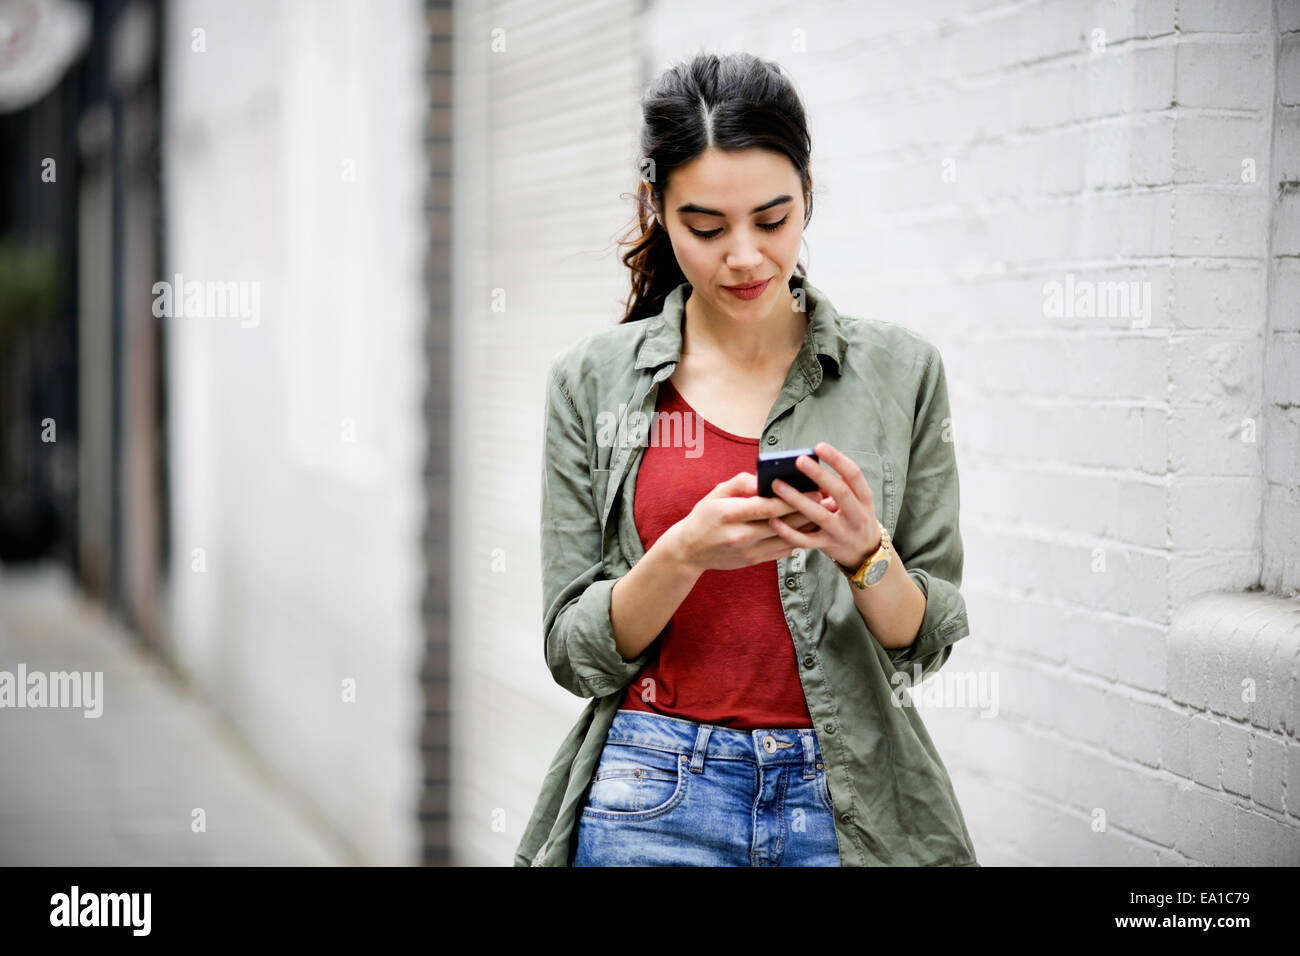 Woman using smartphone - Stock Image